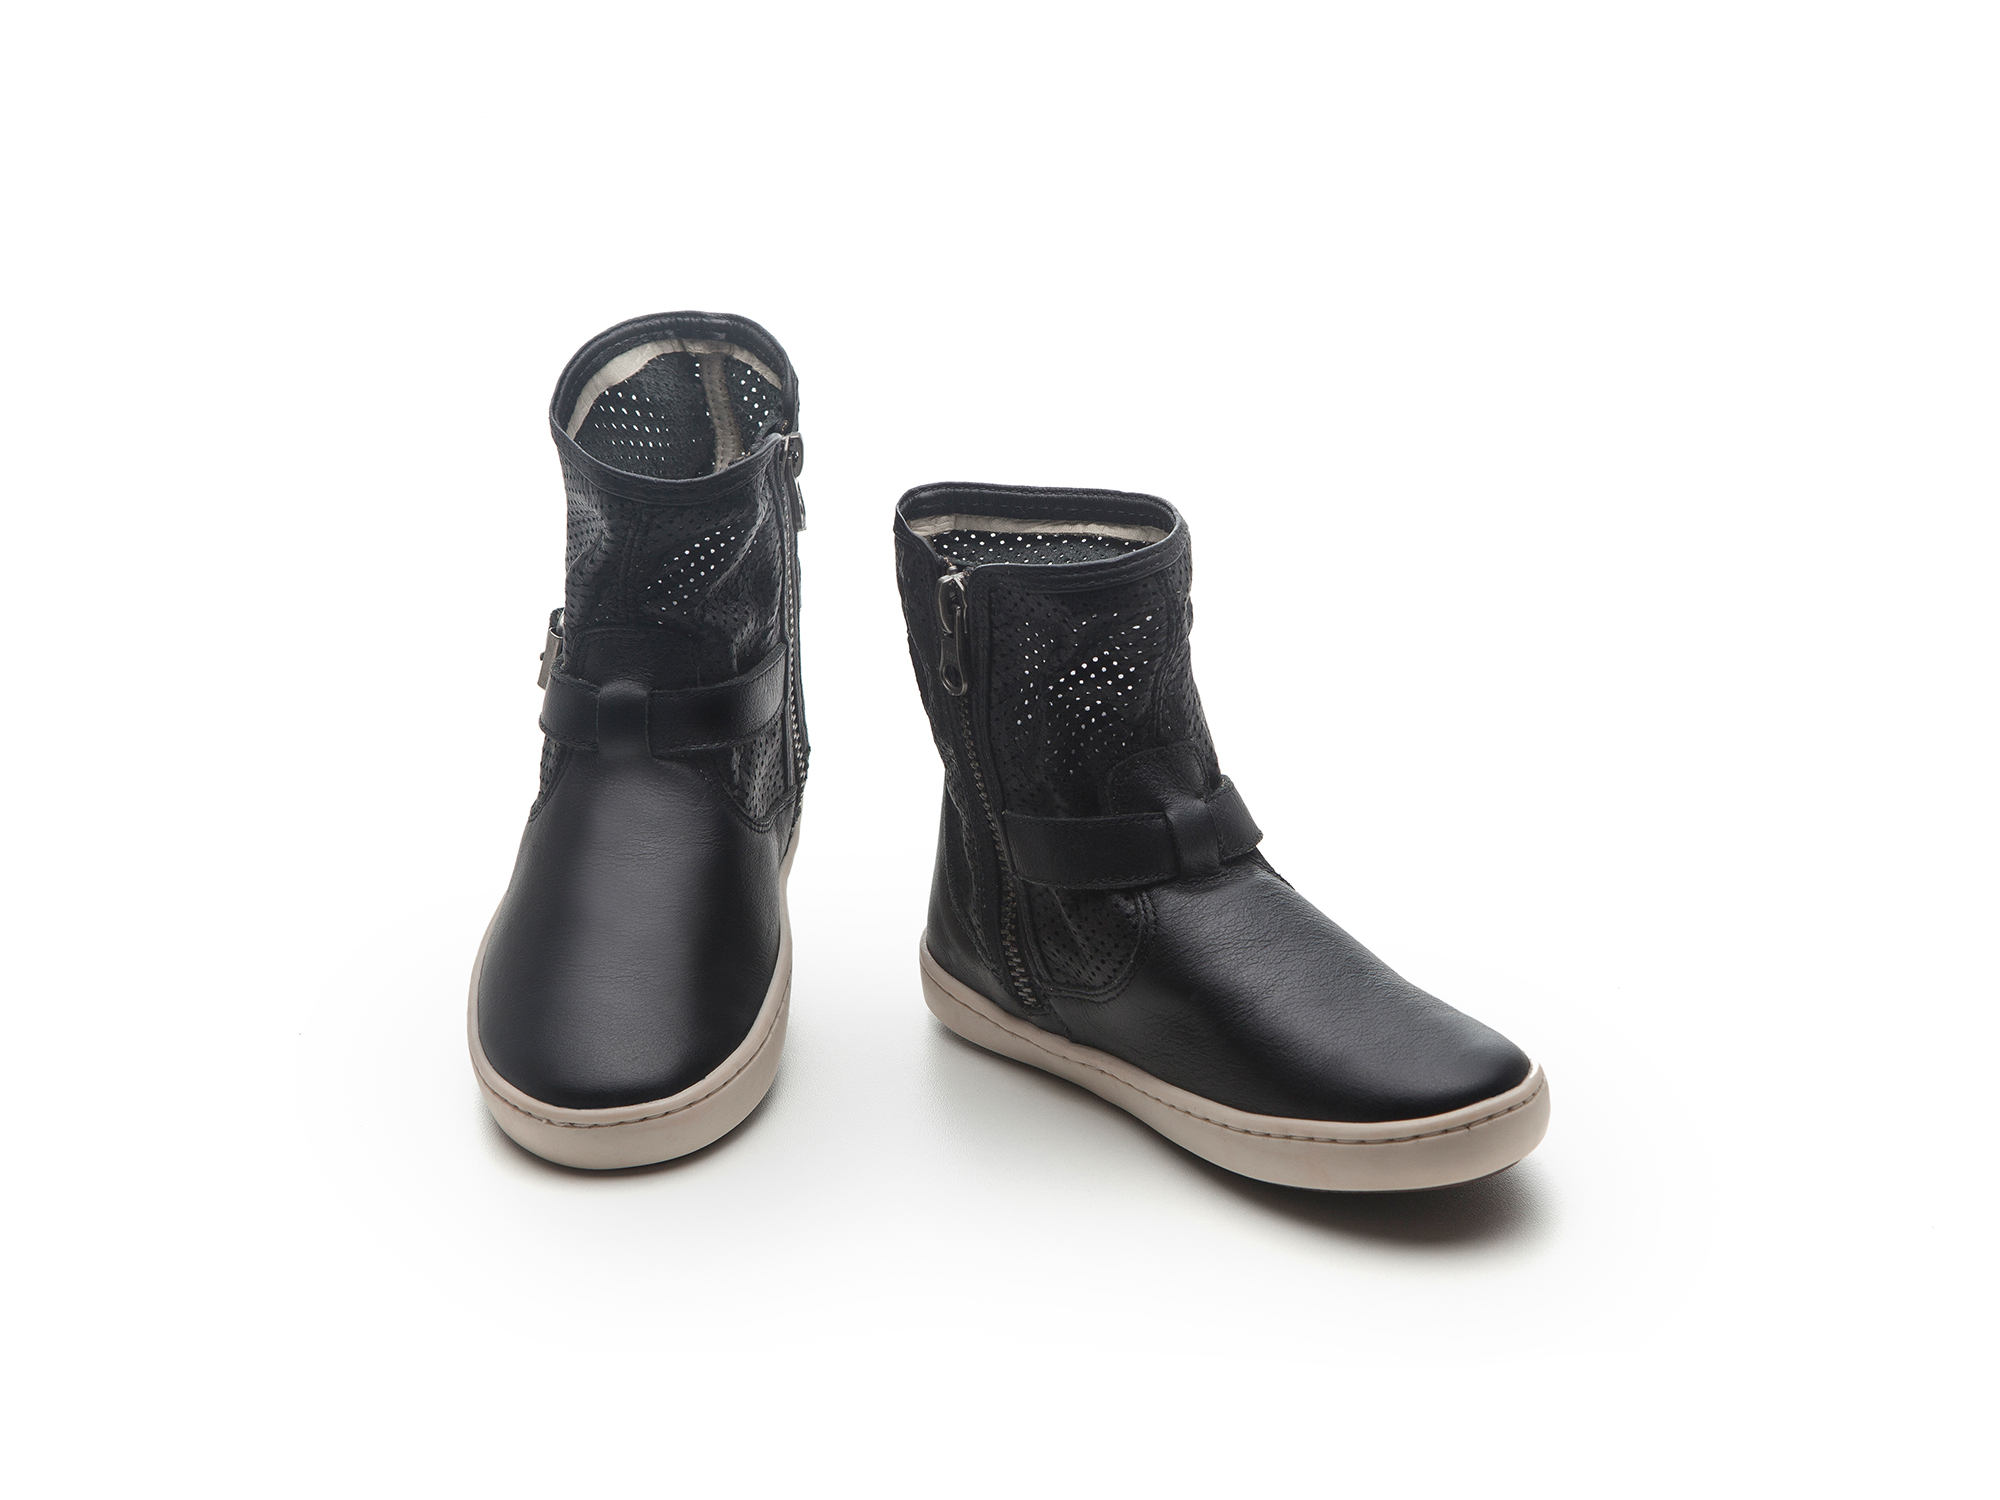 Bota Raw Black/ Black Holes  Junior 4 à 8 anos - 1